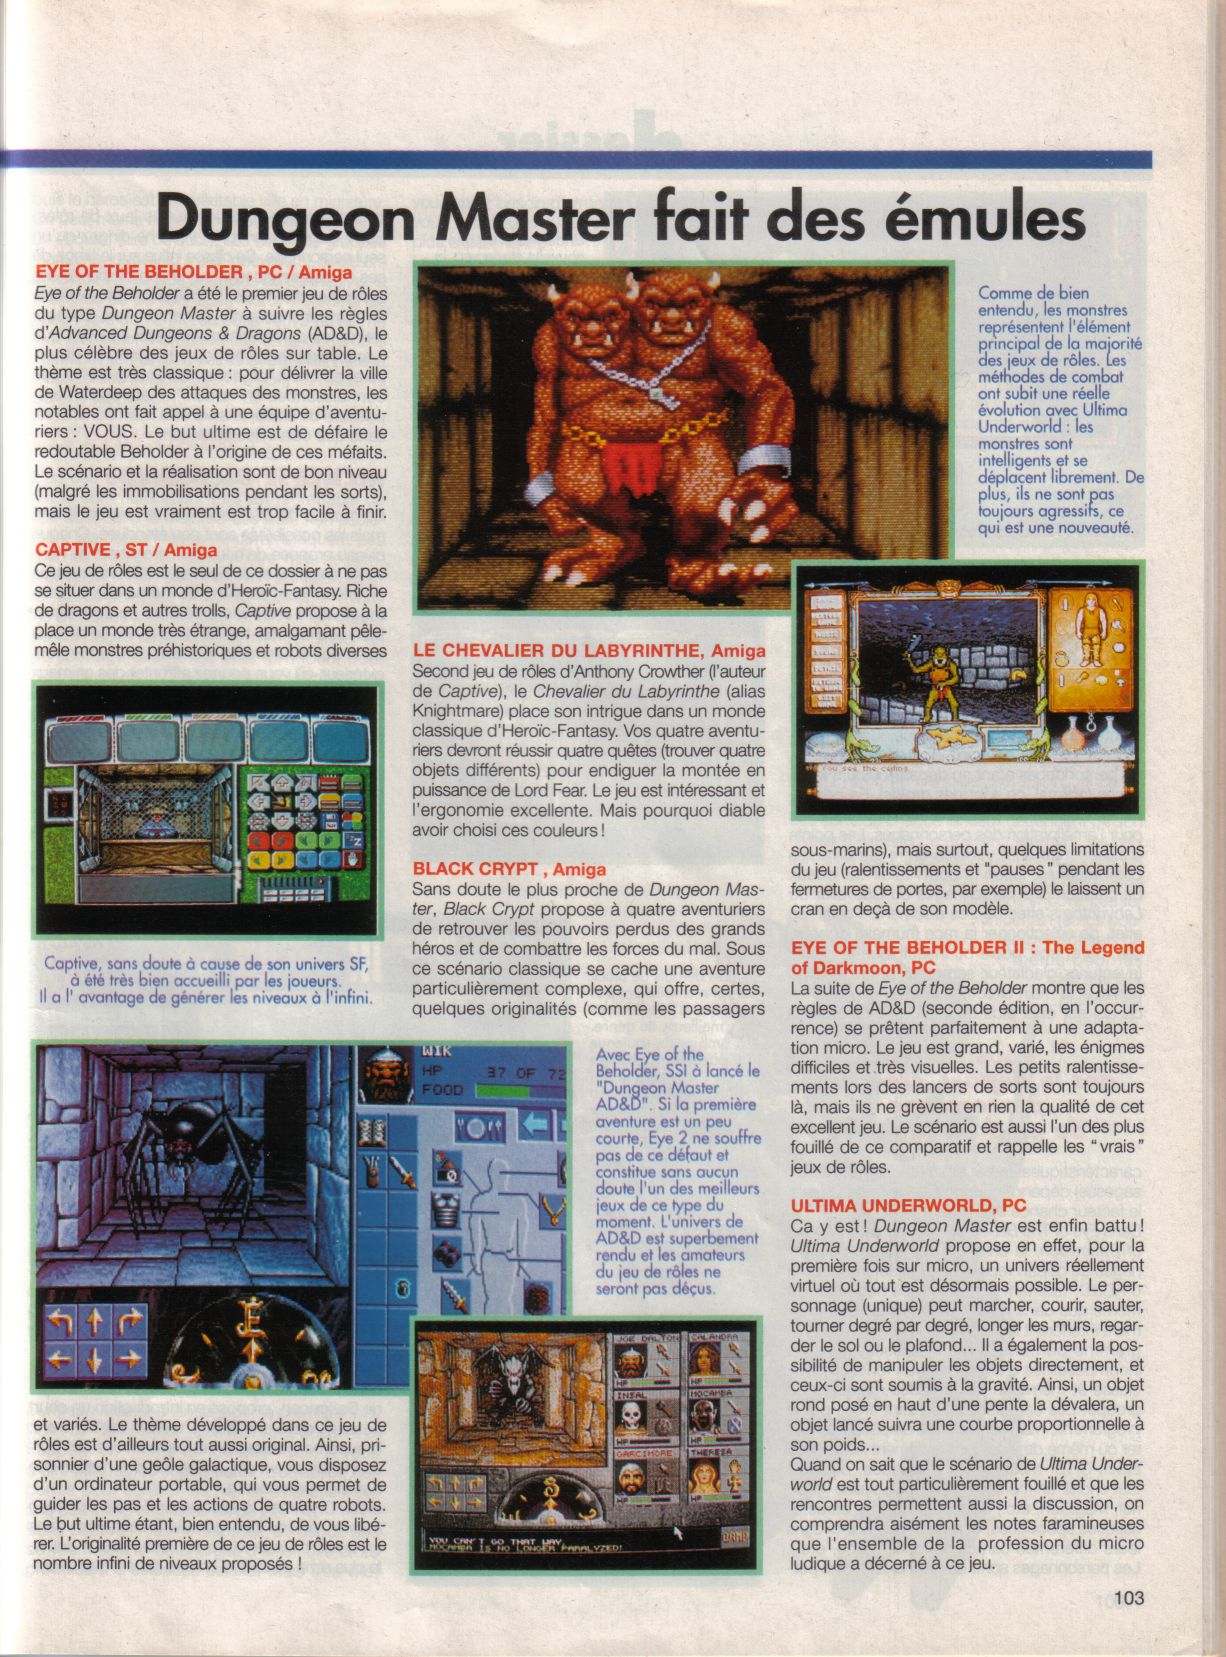 Dungeon Master Article published in French magazine 'Tilt', Issue #105, September 1992, Page 103